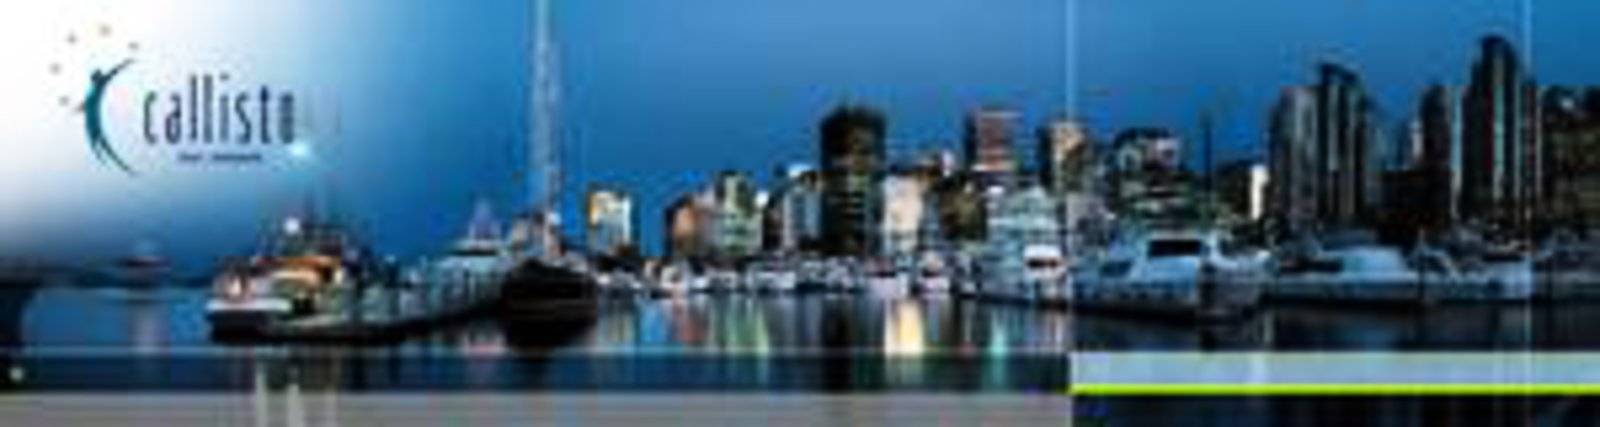 Coal Harbour Waterfront The Callisto is the crown jewel of waterfront in Coal Harbour